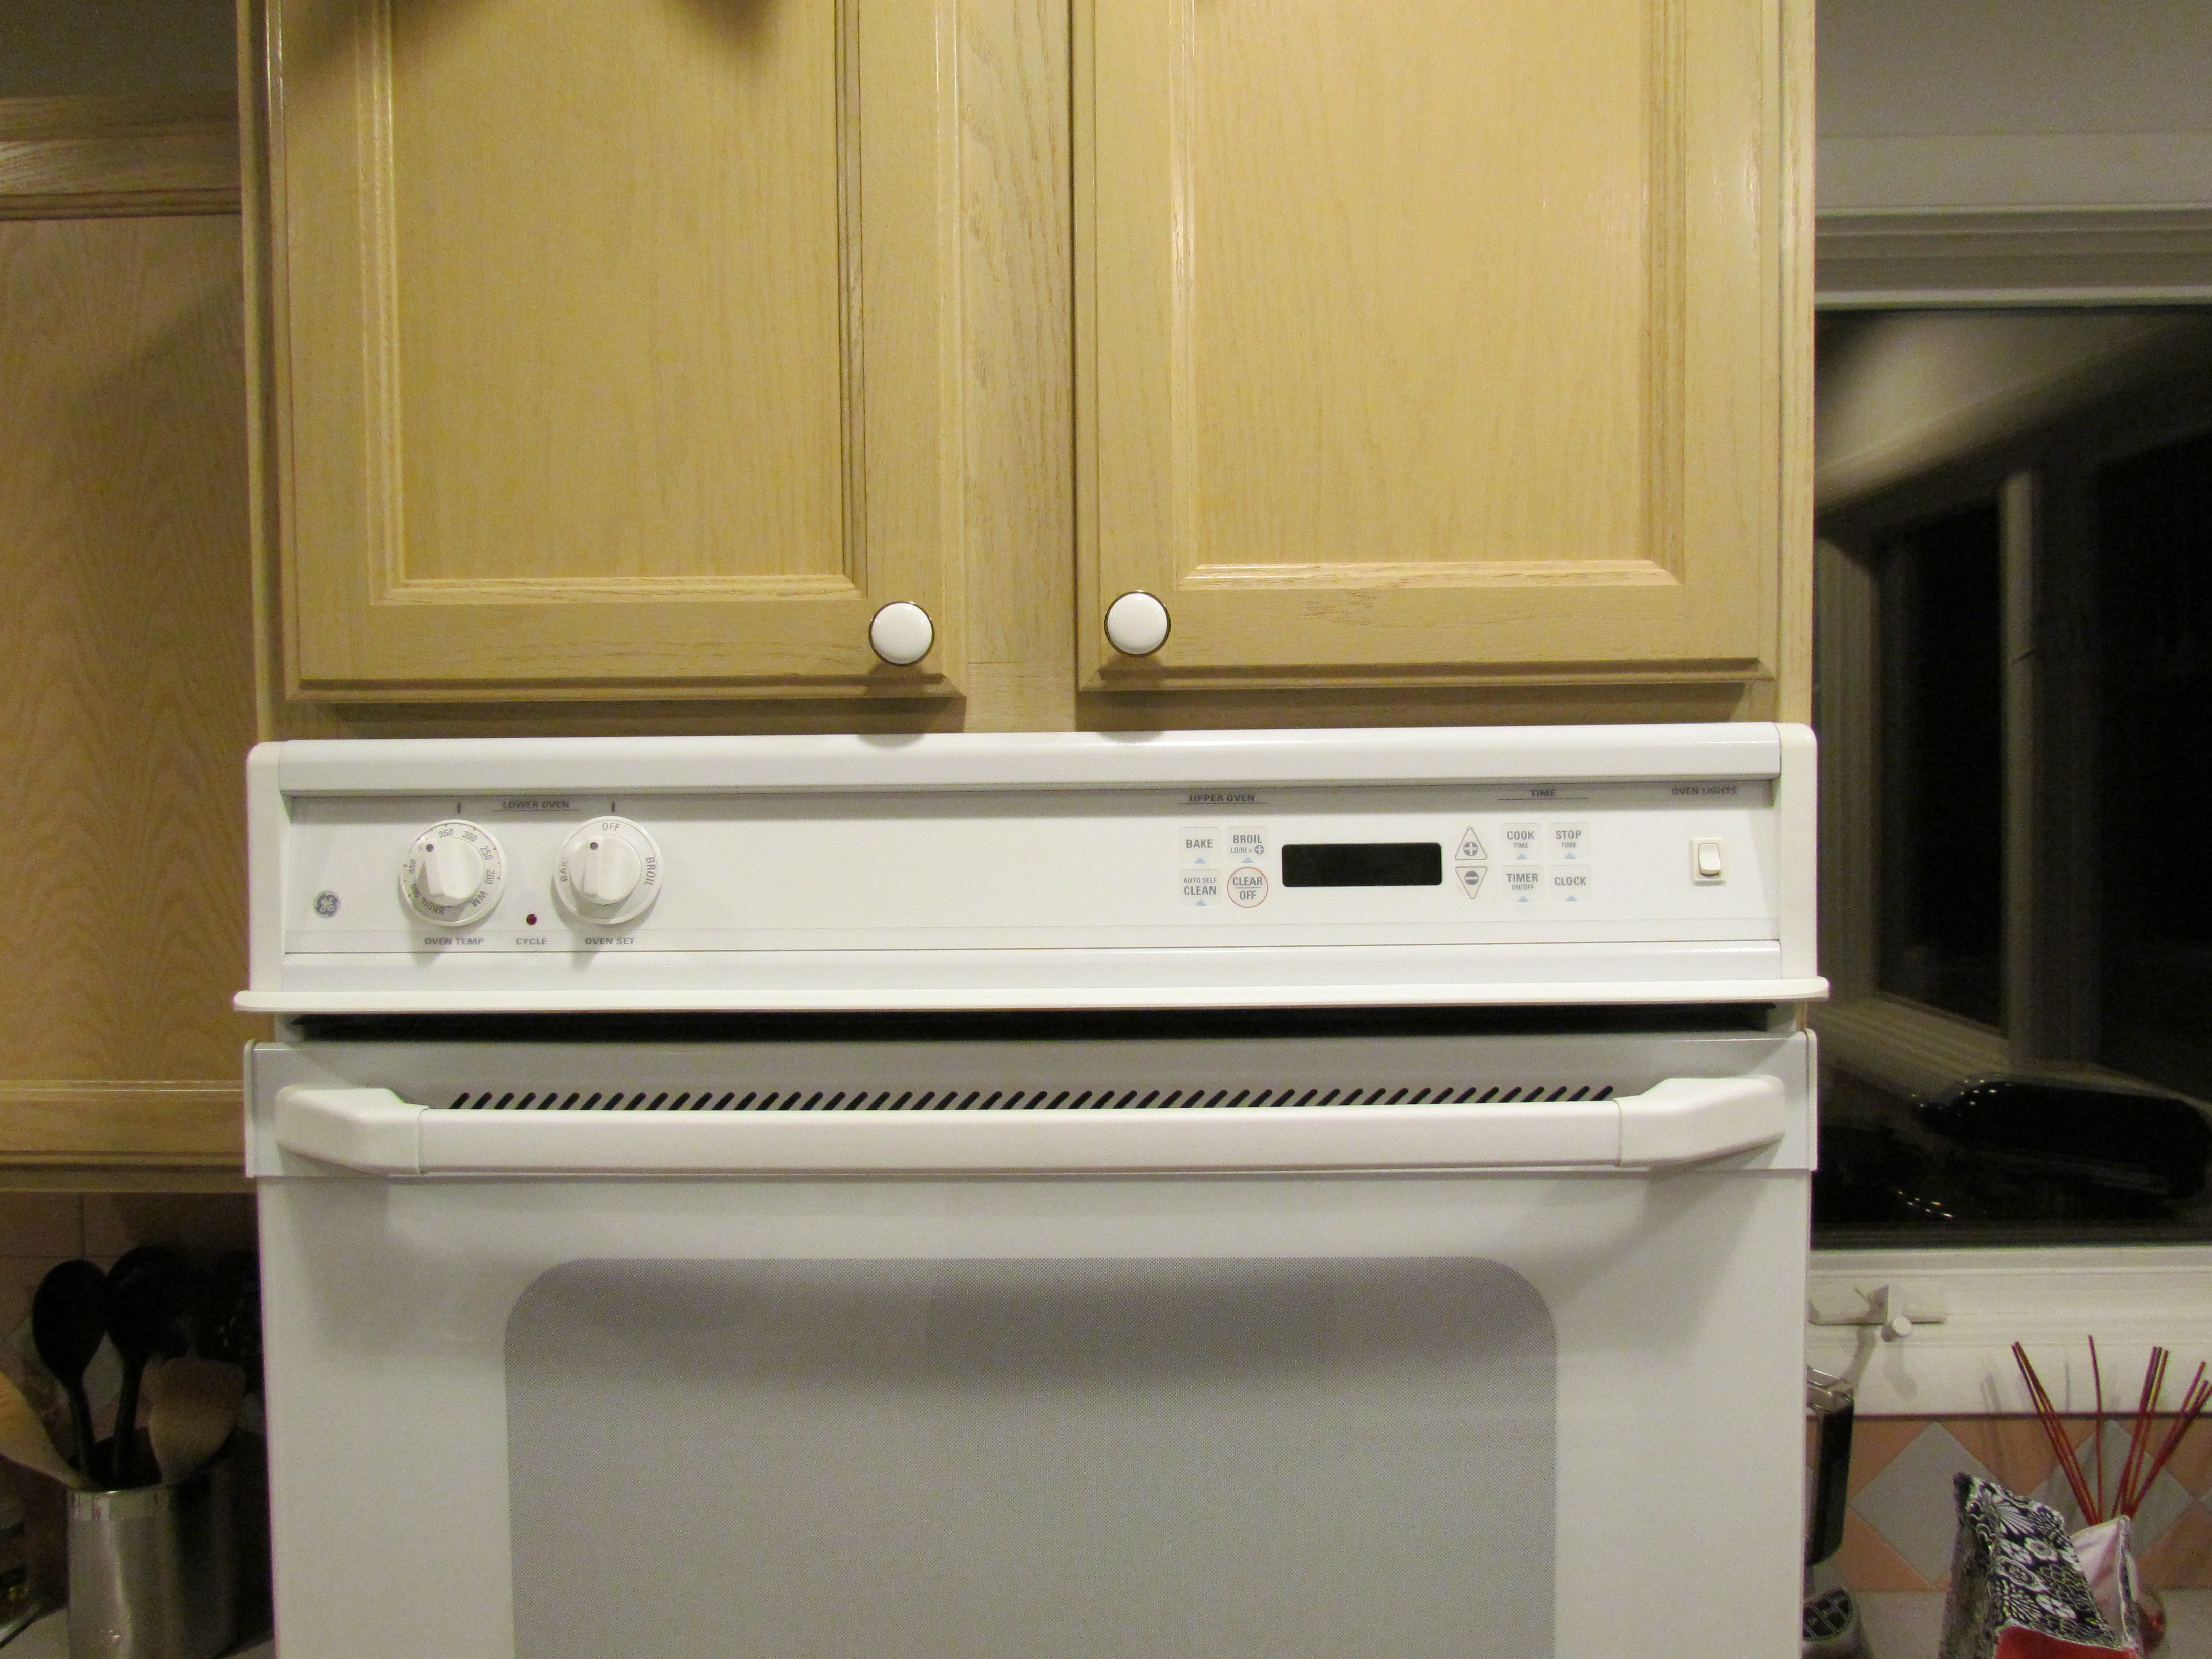 I have a ge double oven jtp27. The top oven will not shut ... Ge Oven Schematic Diagram Jkp Woa Ww on